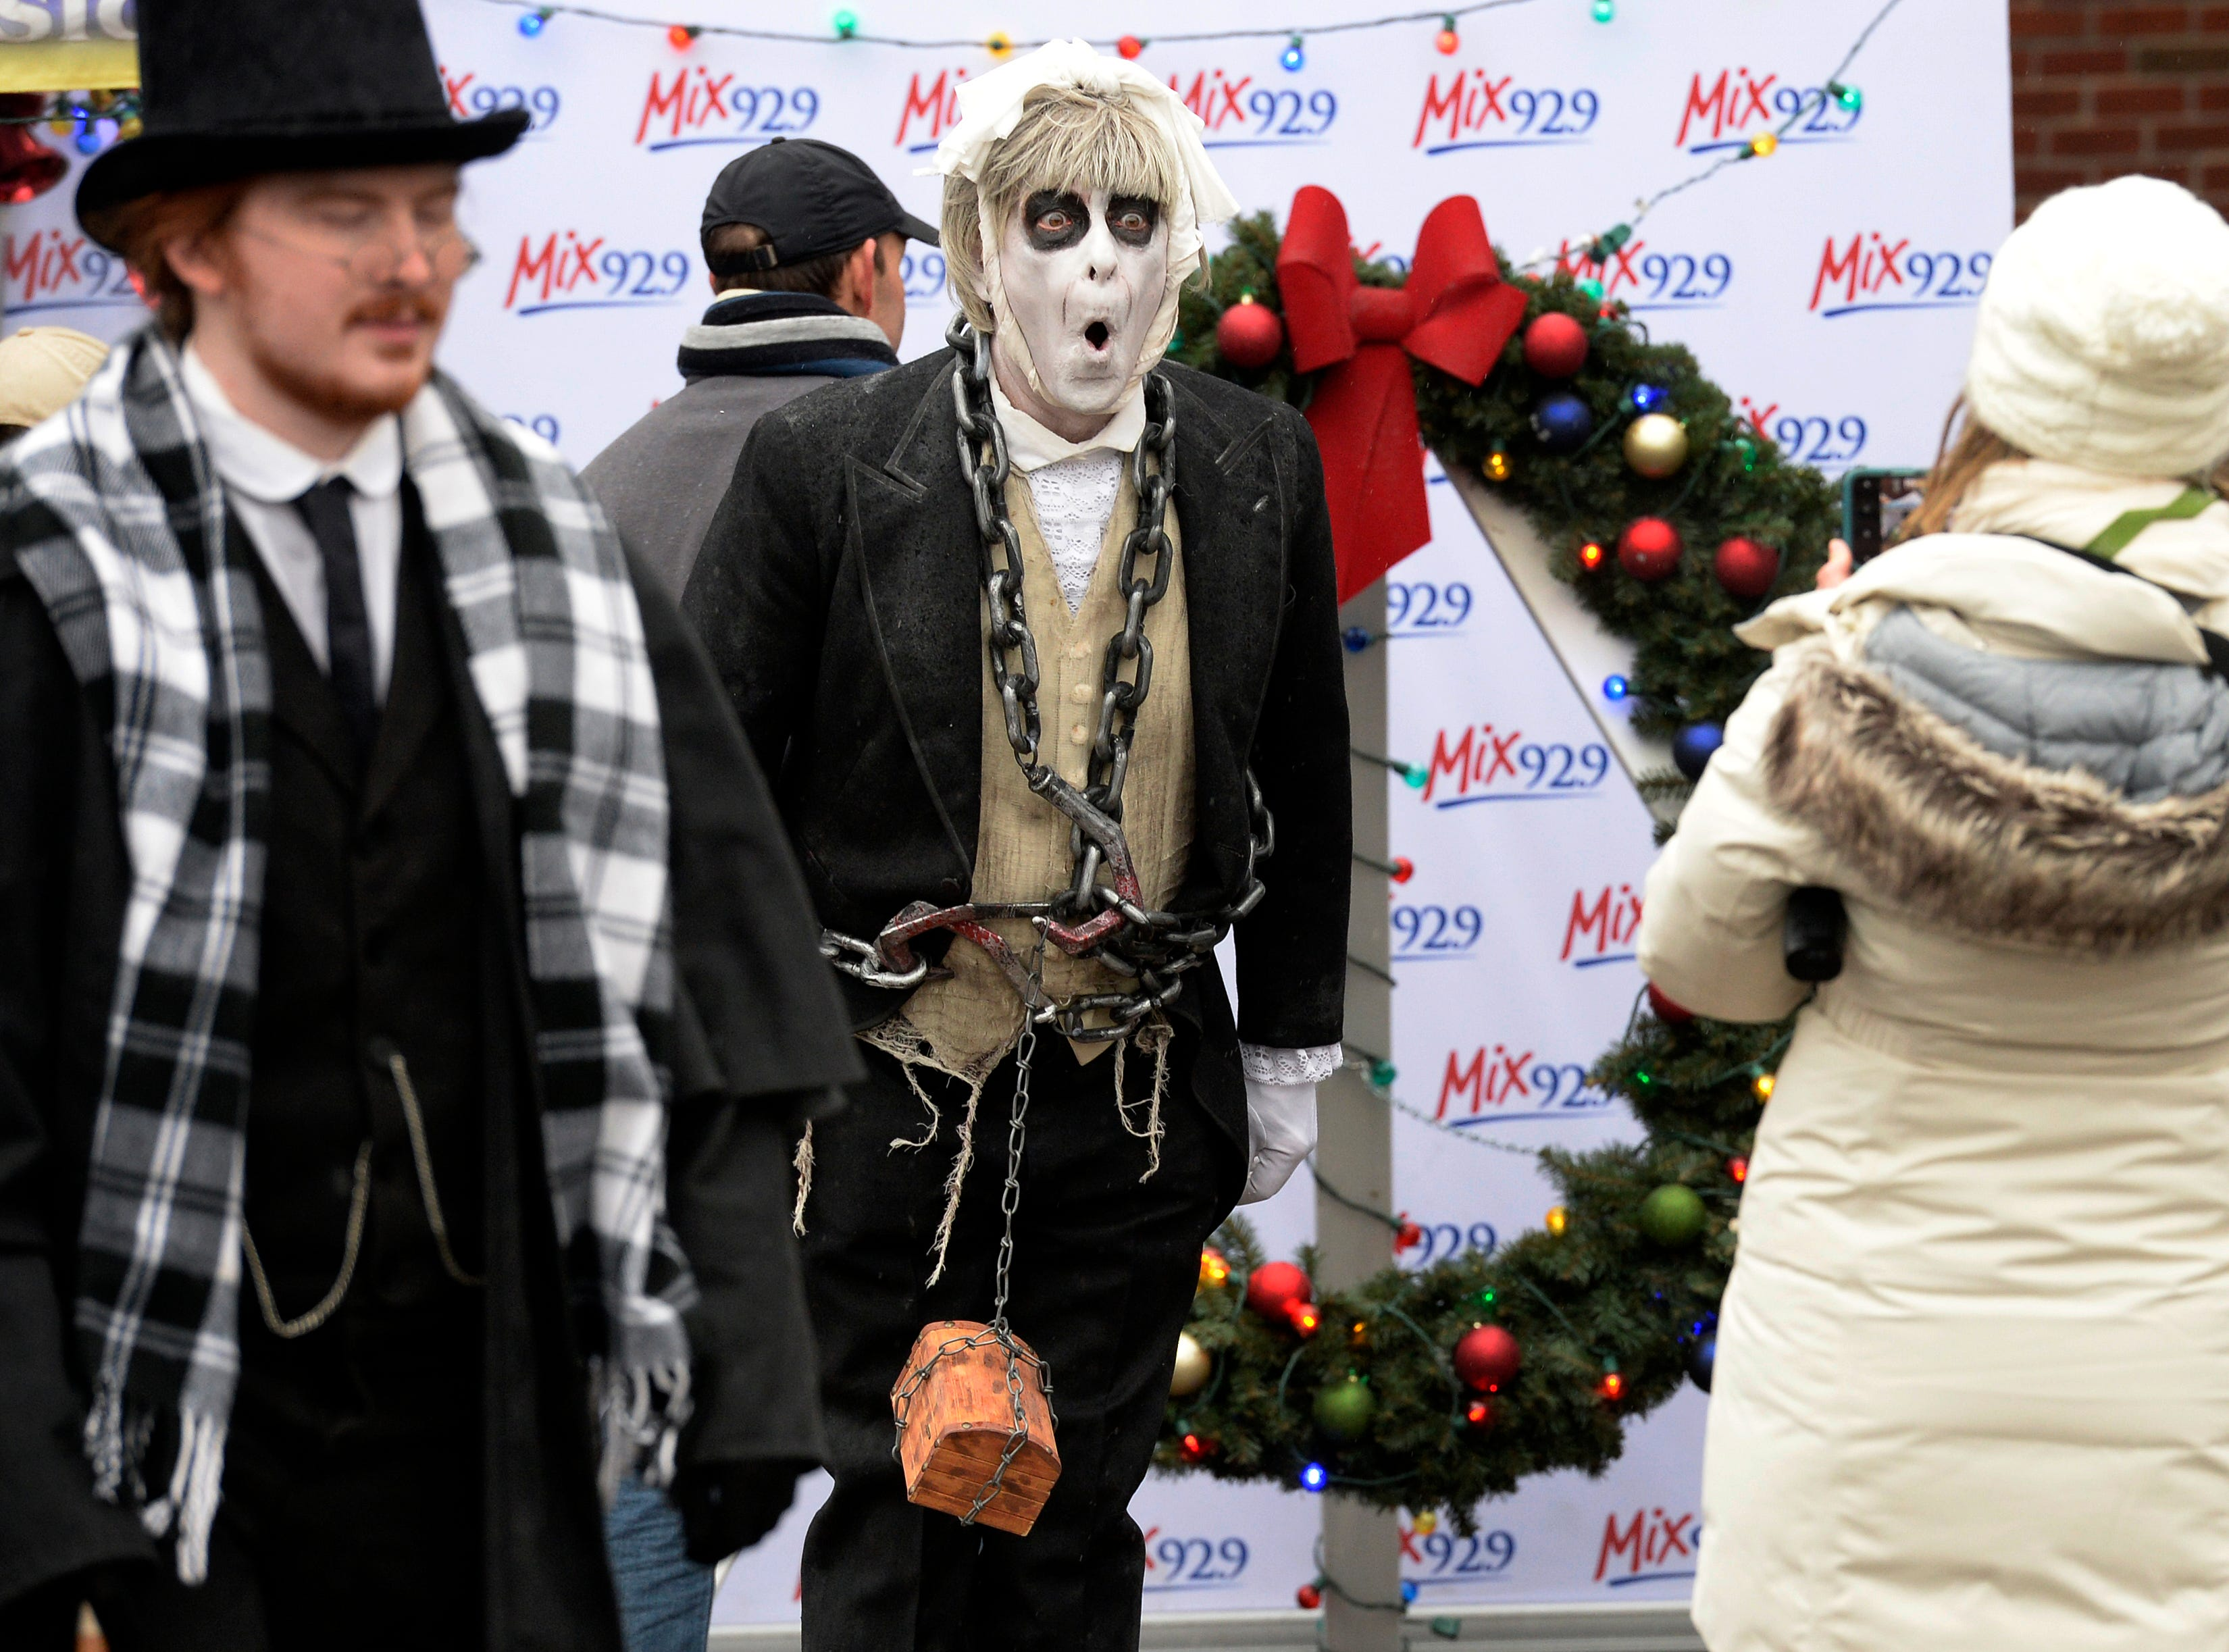 John Kitson dresses up as ghost character from A Christmas Carol as he interacts with people during the Dickens of a Christmas on Saturday, Dec. 8, 2018, in Franklin, Tenn.